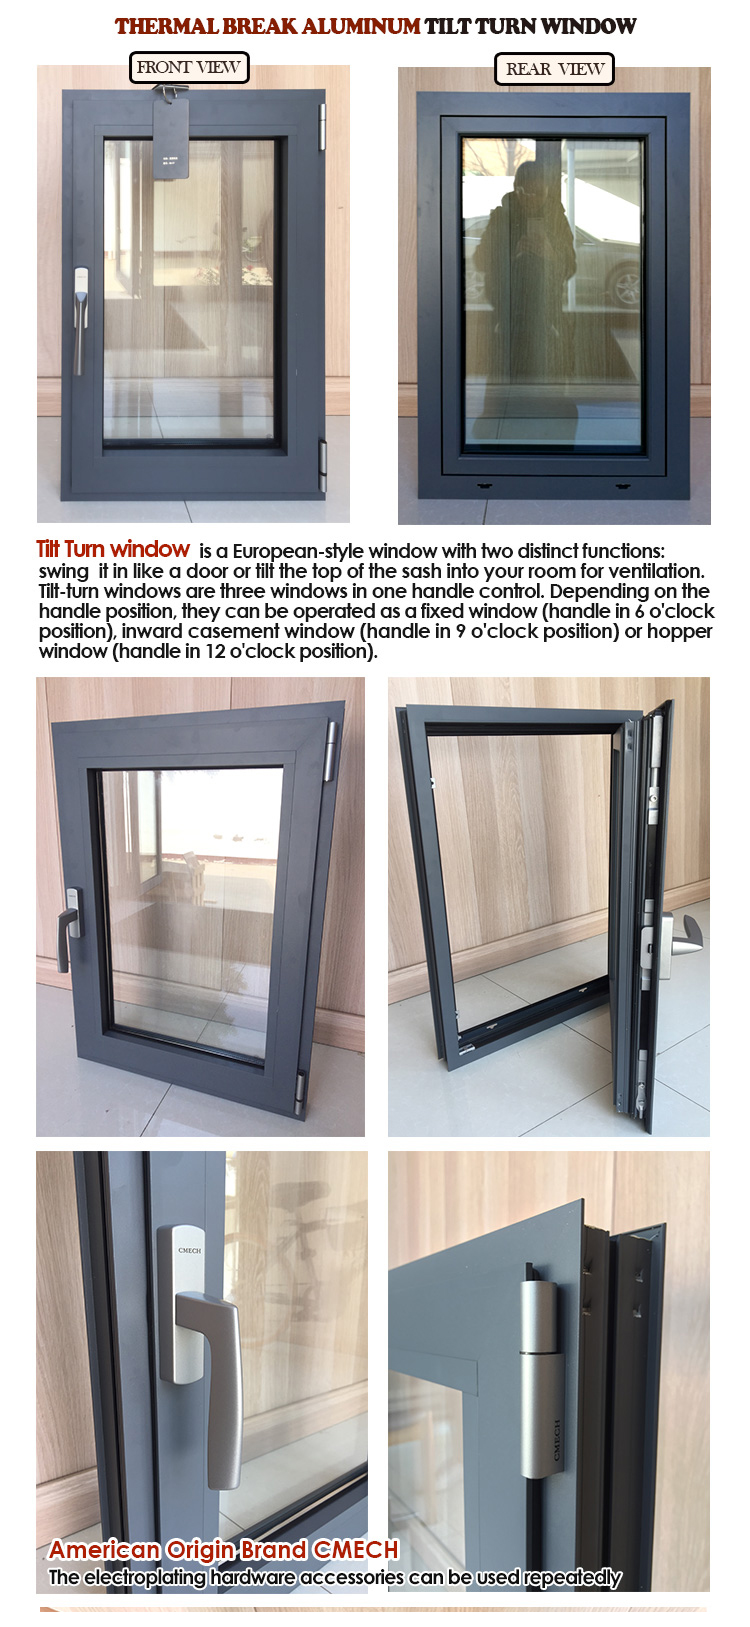 Australian standard AS2047 AS2208 low-e glass aluminum tilt and turn window with Roto hardware